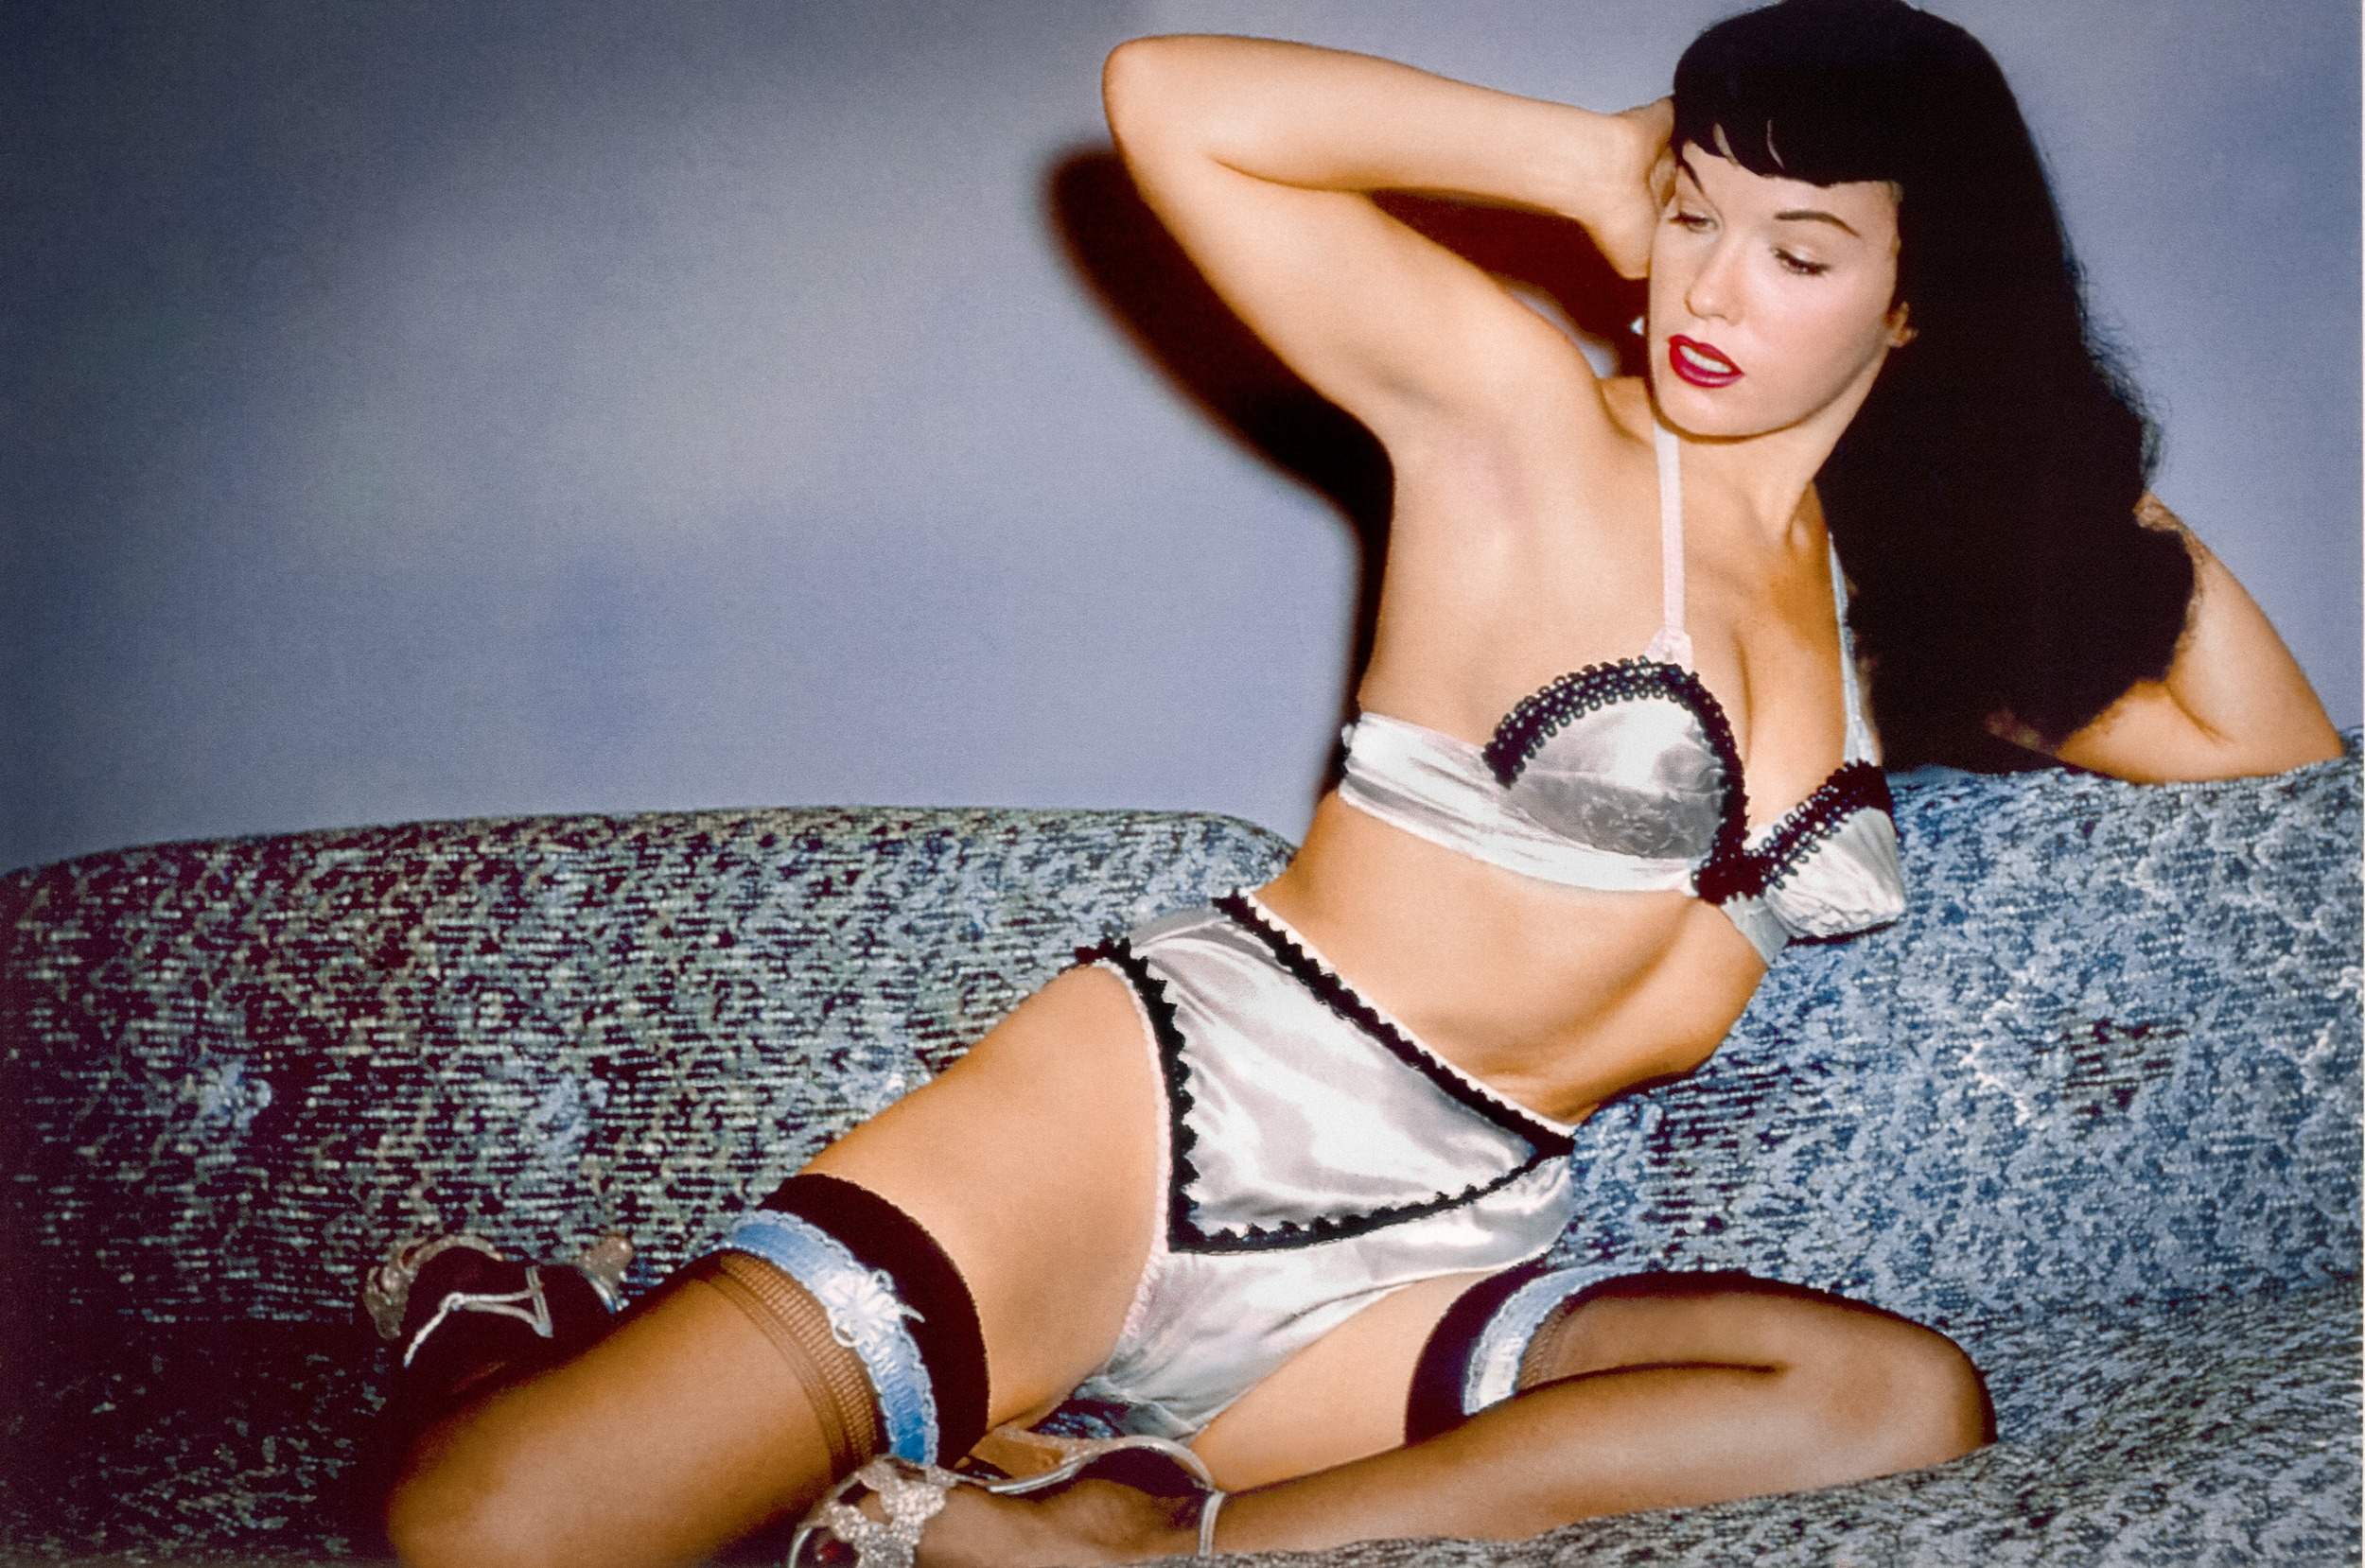 The greatest strength of Bettie Page Reveals All  is that it allows Bettie, via archival audio interviews, to tell her own story